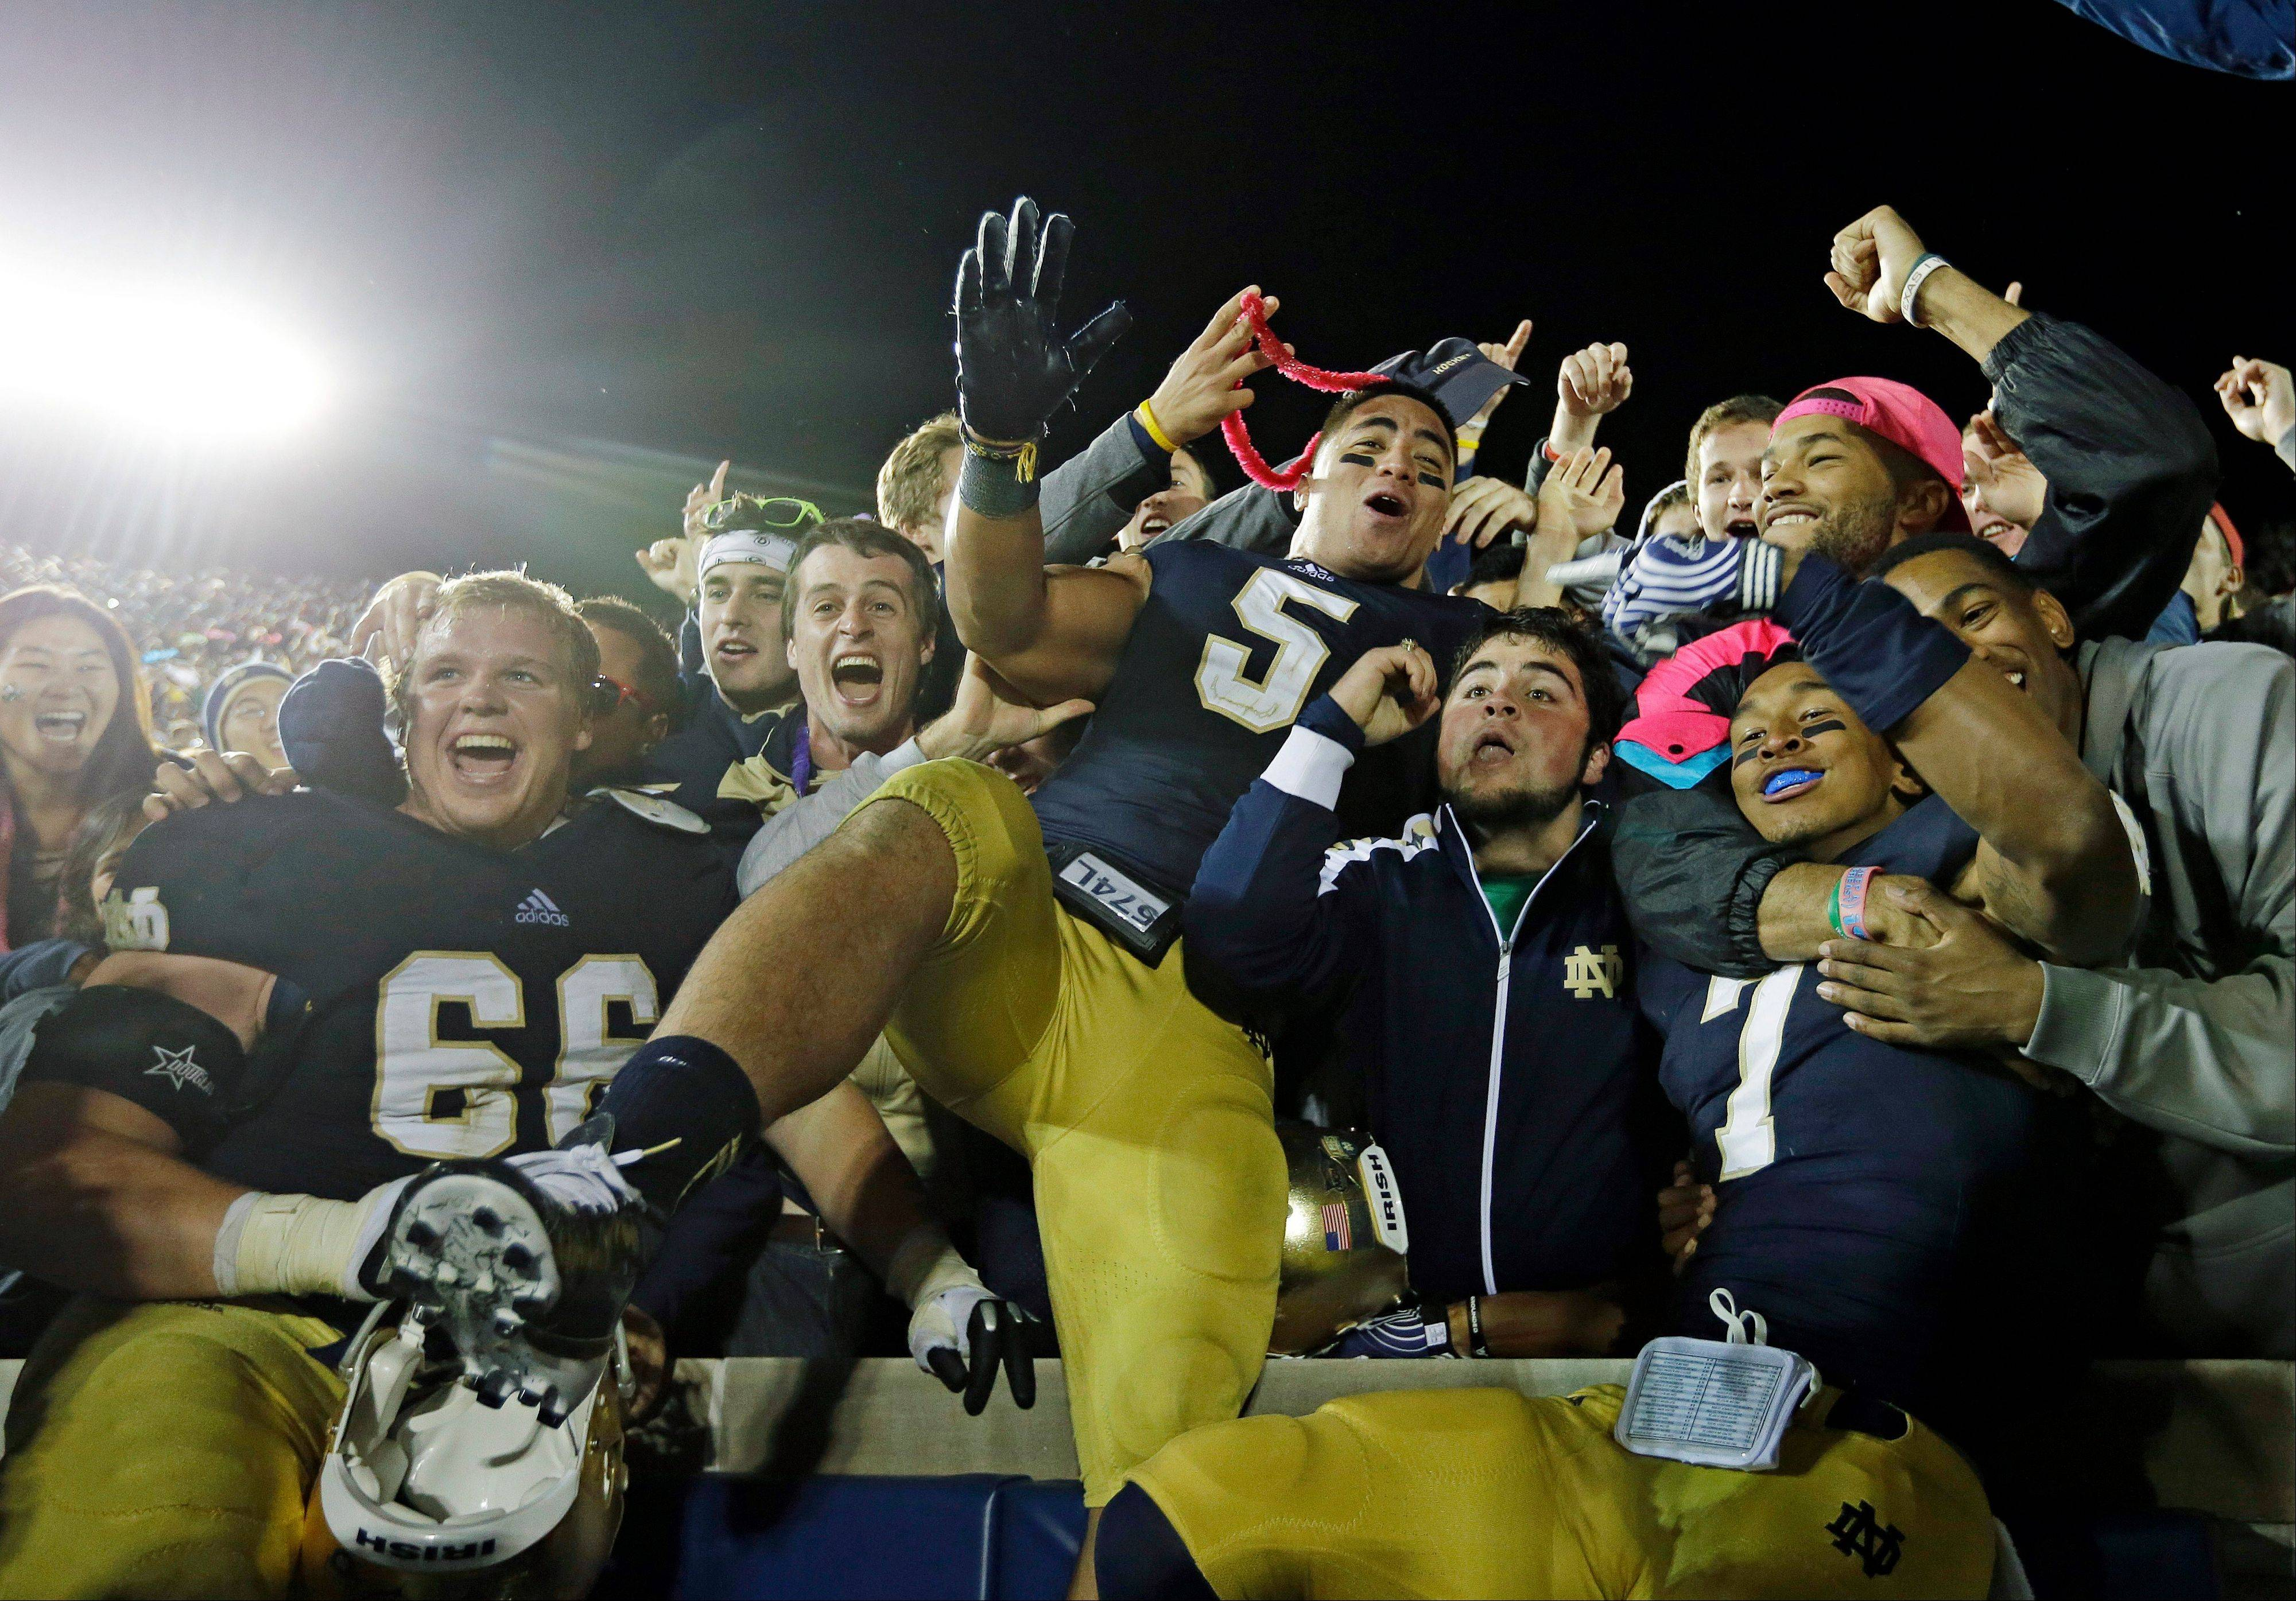 In this Sept. 22, 2012 photo, Notre Dame's Chris Watt (66), Manti Te'o (5) and TJ Jones (7) celebrate with fans after Notre Dame defeated Michigan 13-6 on Sept. 22, 2012, in South Bend, Ind.